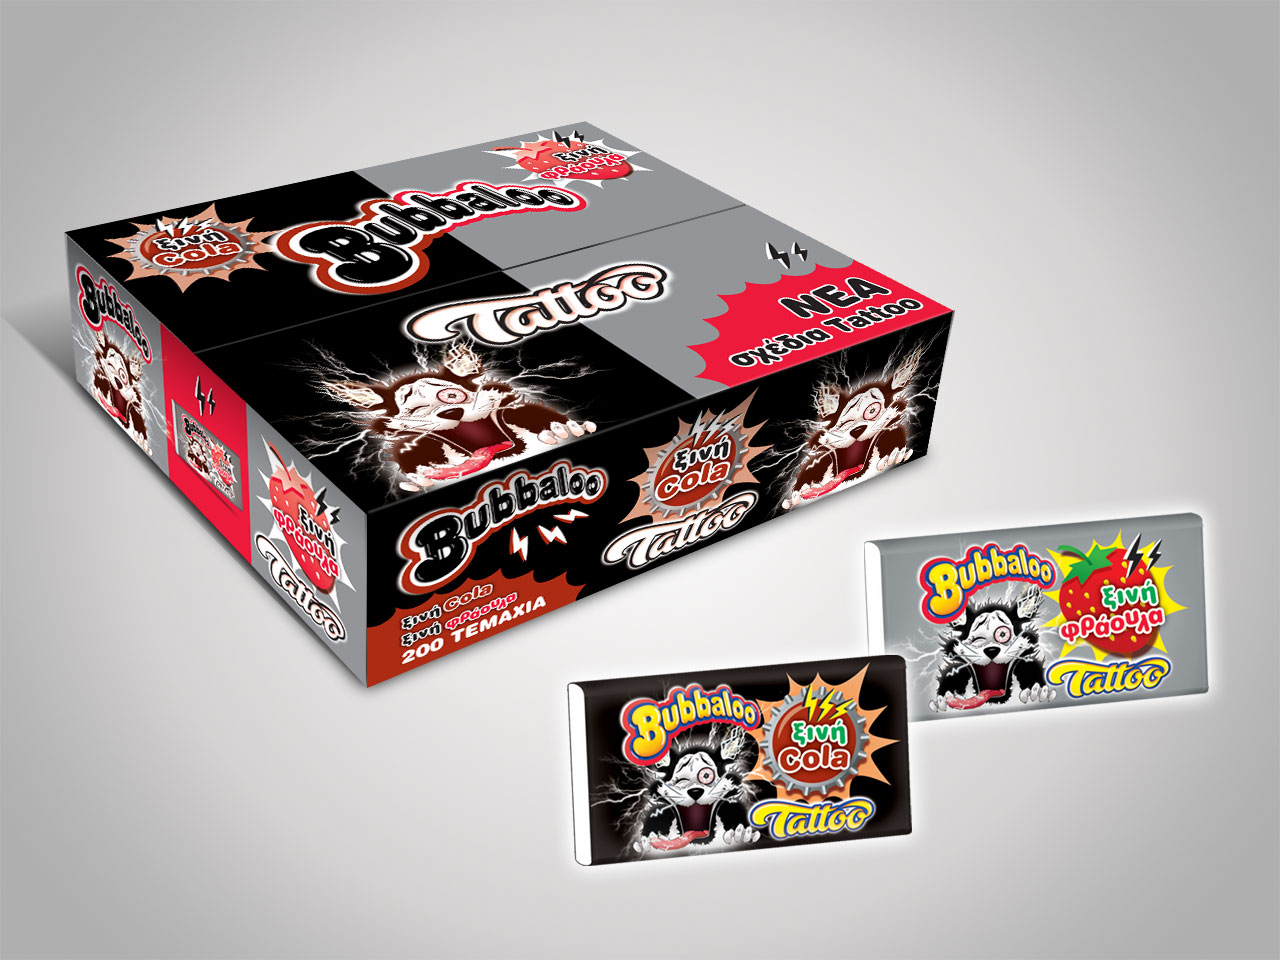 Bubbaloo Tattoo Sour Cola and Strawberry flavor packaging